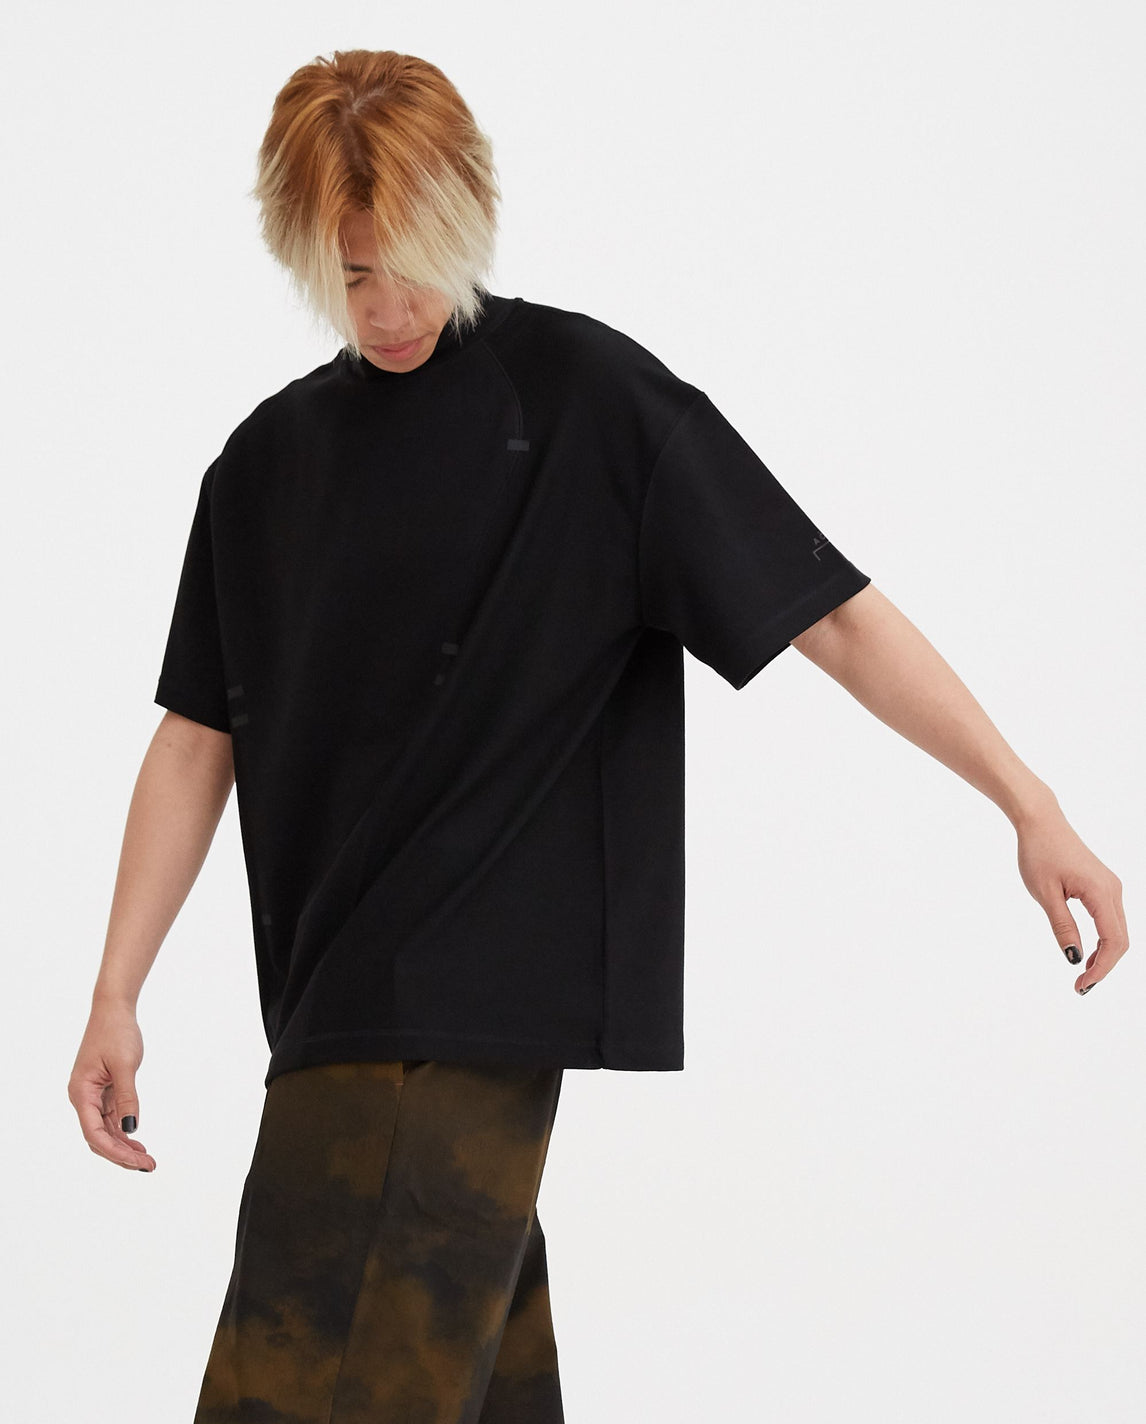 Knitted Double Layer T-Shirt - Black MENS A-COLD-WALL*